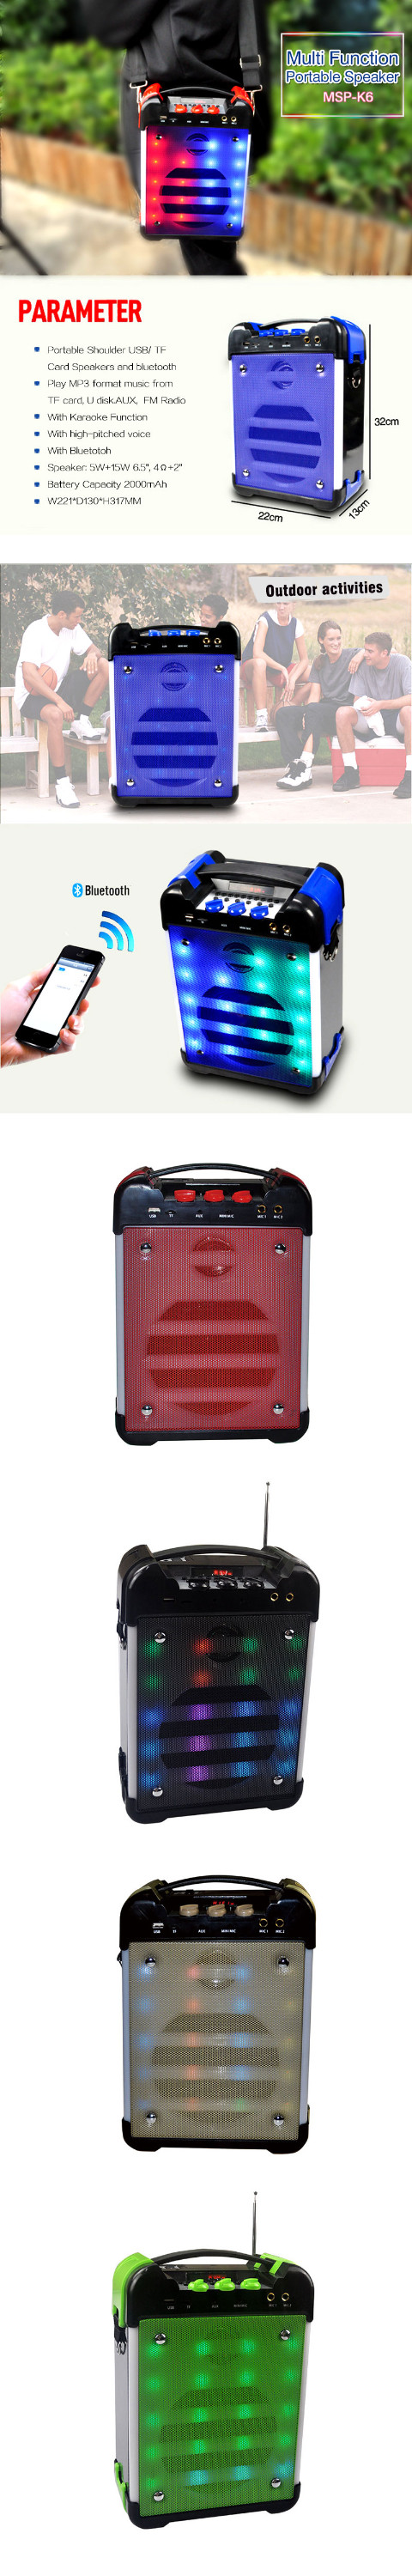 Popular wireless loud portable speakers home karaoke speakers portable speakers with subwoofer